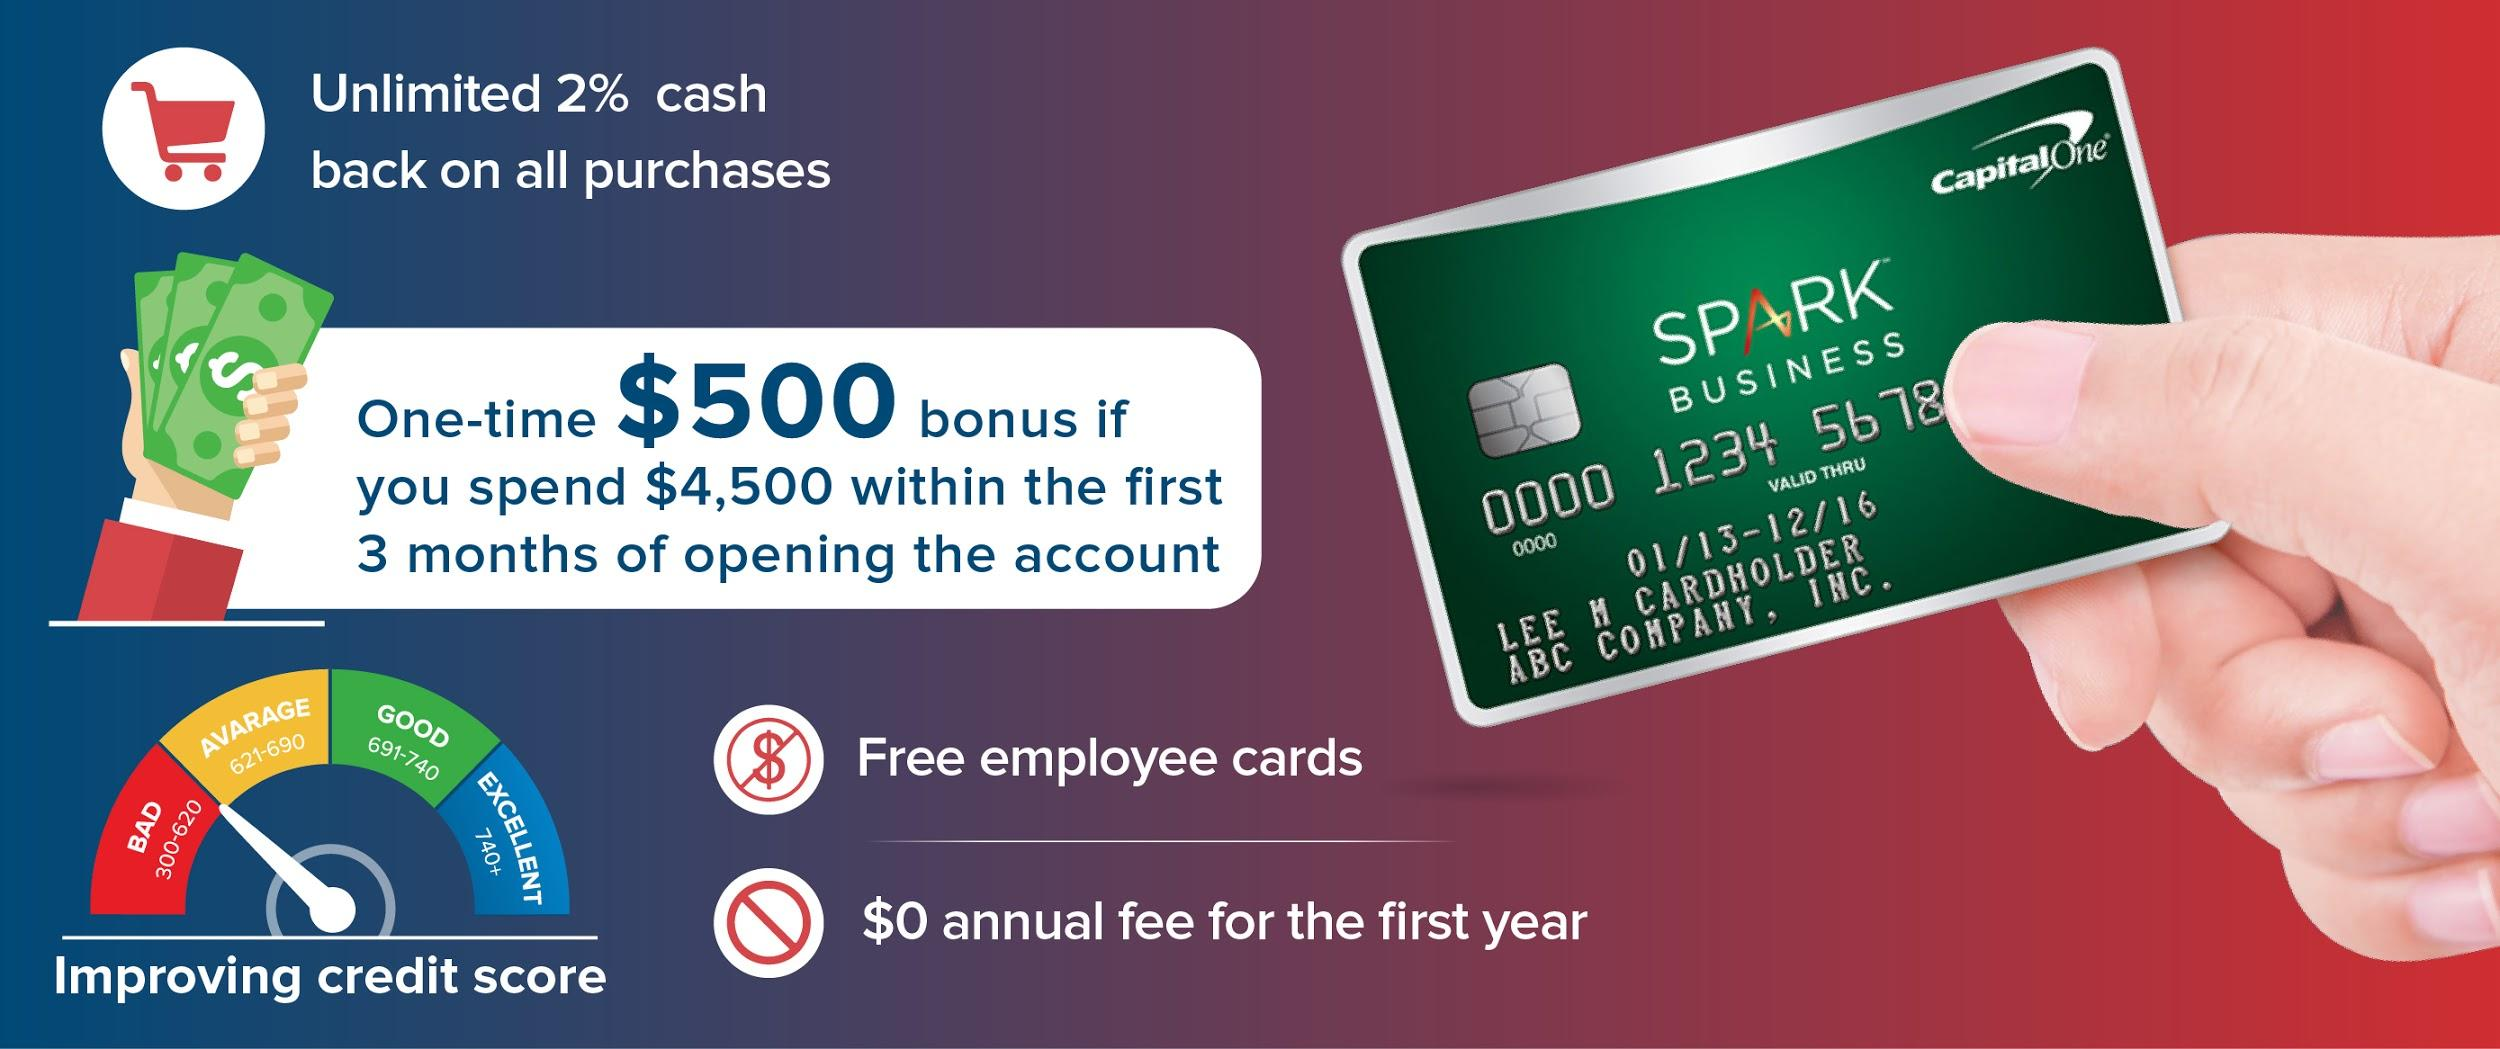 Capital One Cash Rewards Credit Cards - CreditLoan.com®